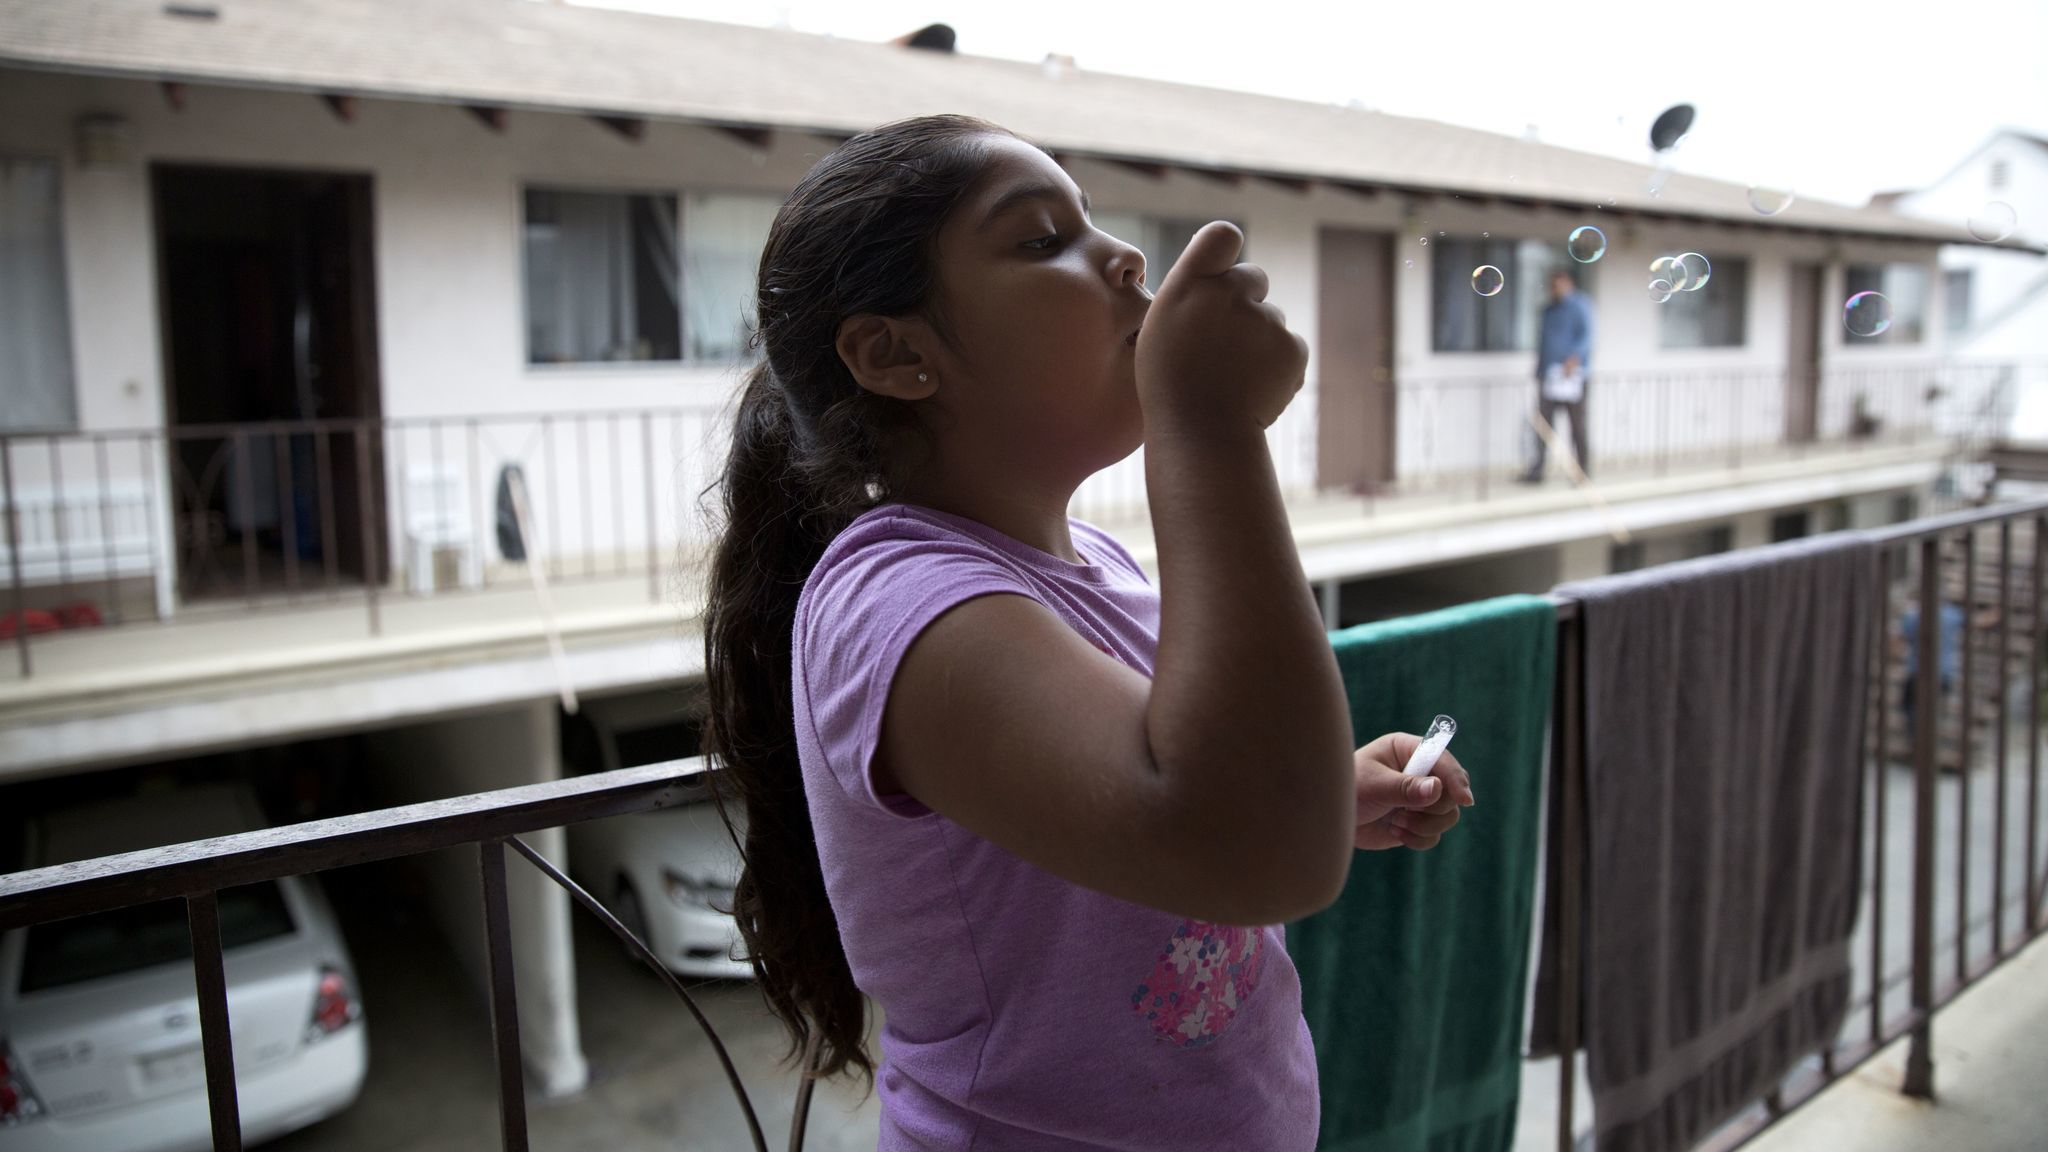 As her family packs the car to move, Luz Madrigal, 6, blows bubbles on the balcony of her apartment in Gardena.